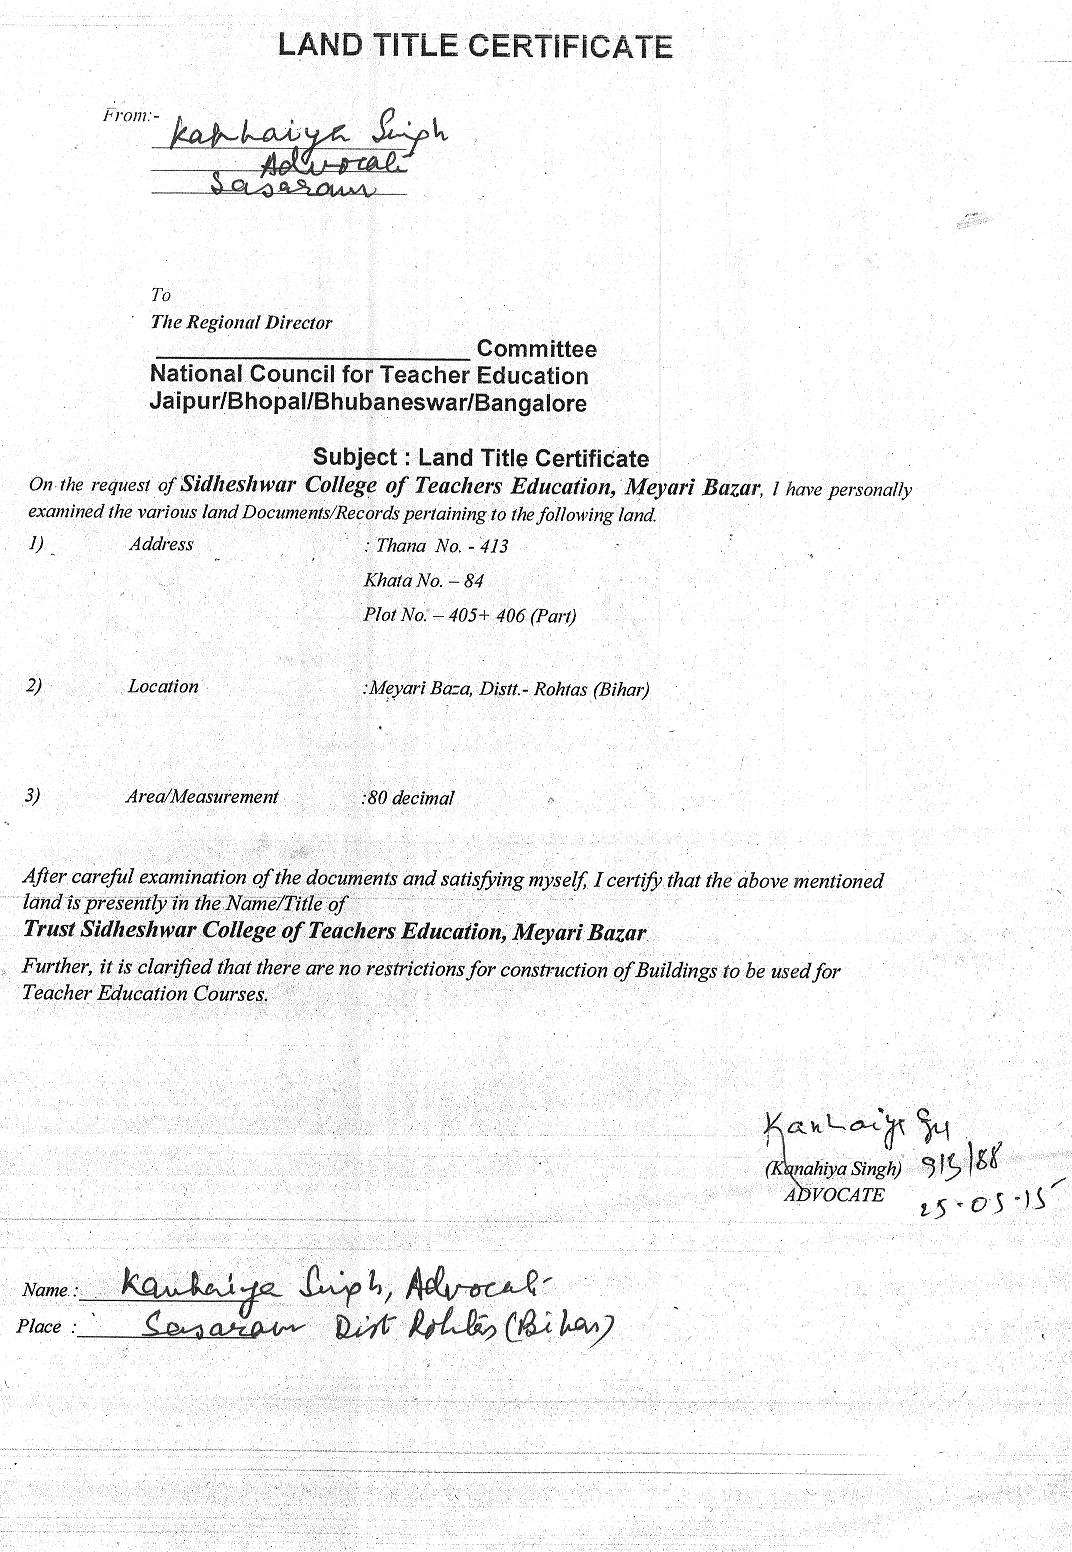 Land Title Certificate Sidheshwar College